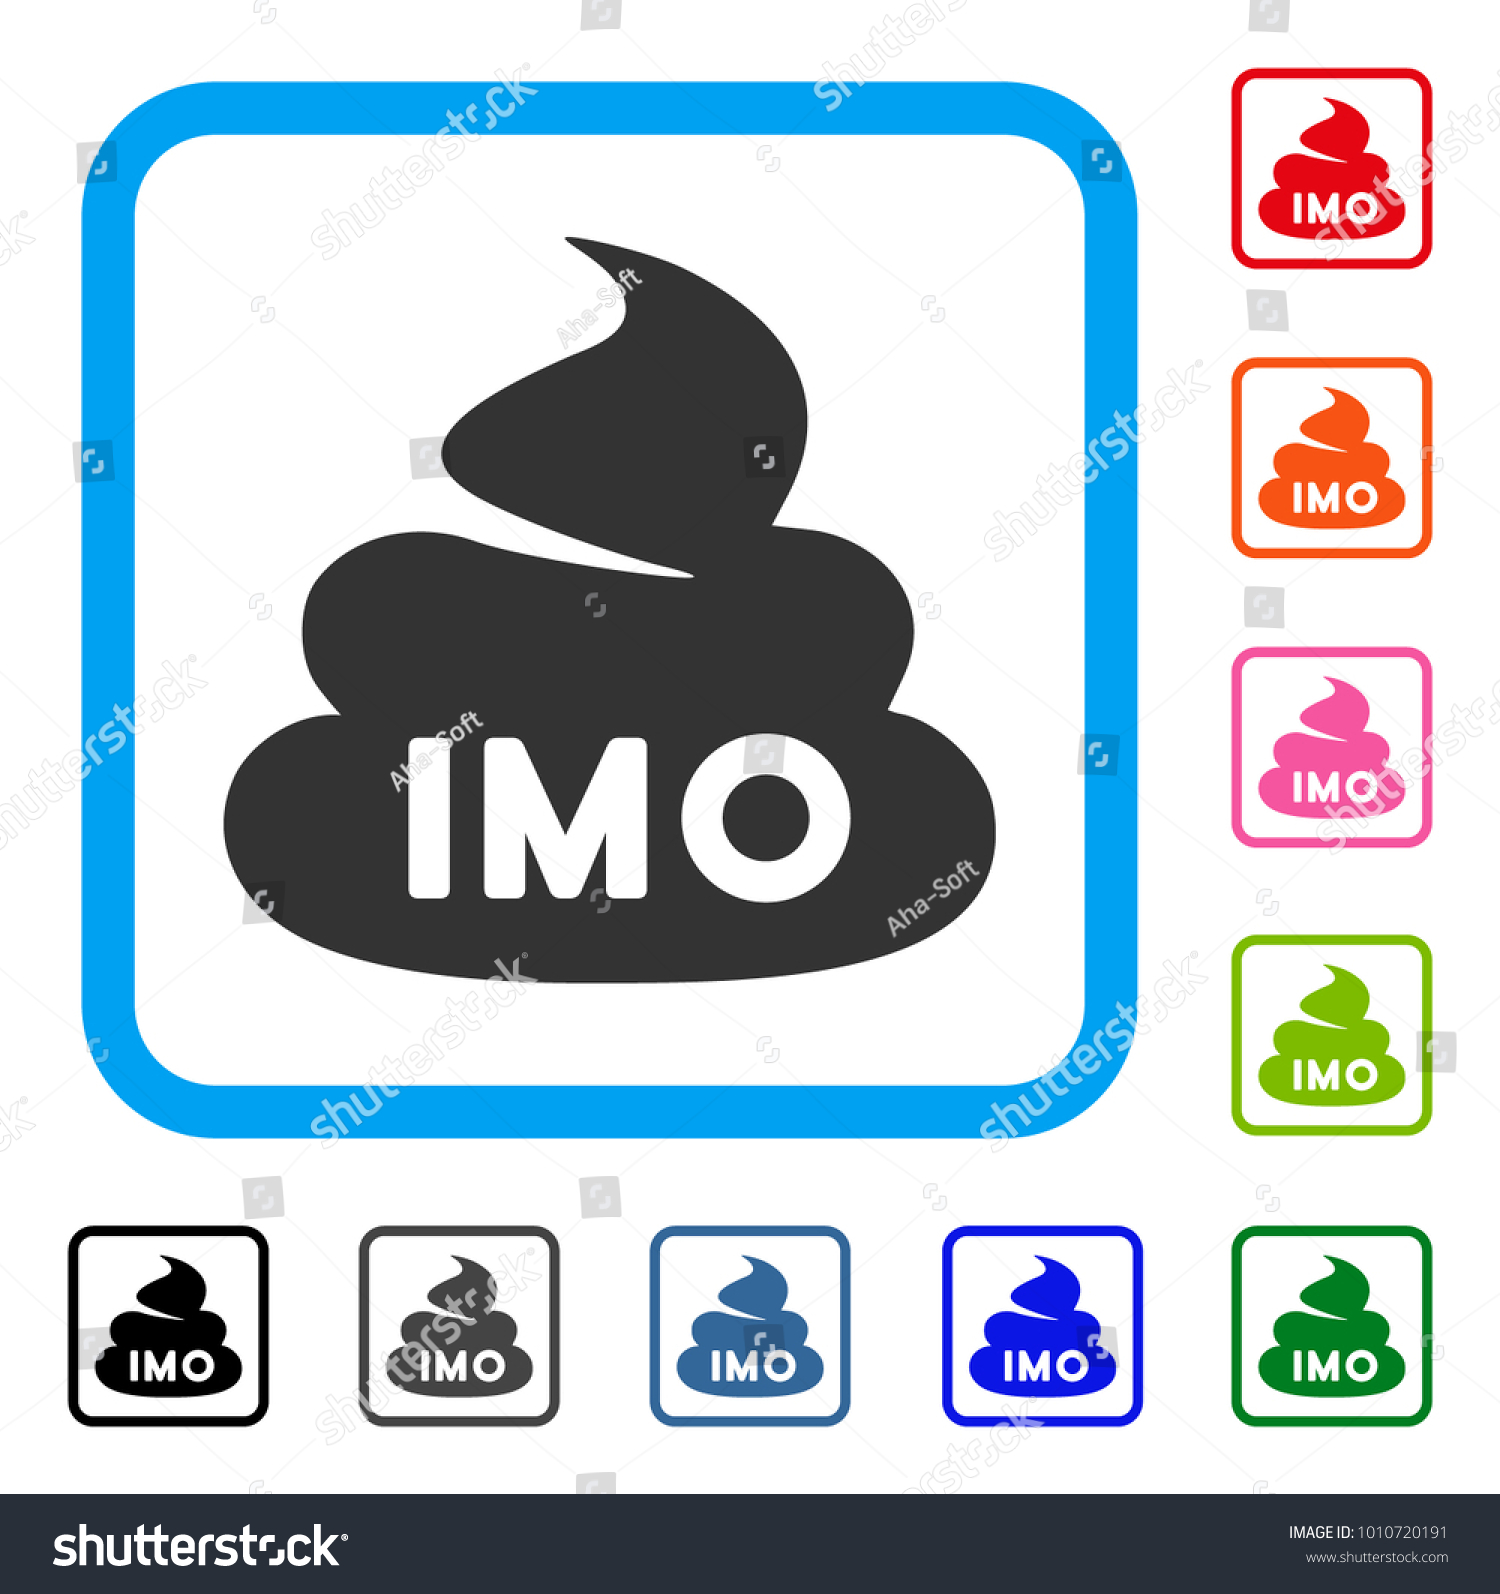 Imo Shit Icon Flat Grey Iconic Stock Vector Royalty Free